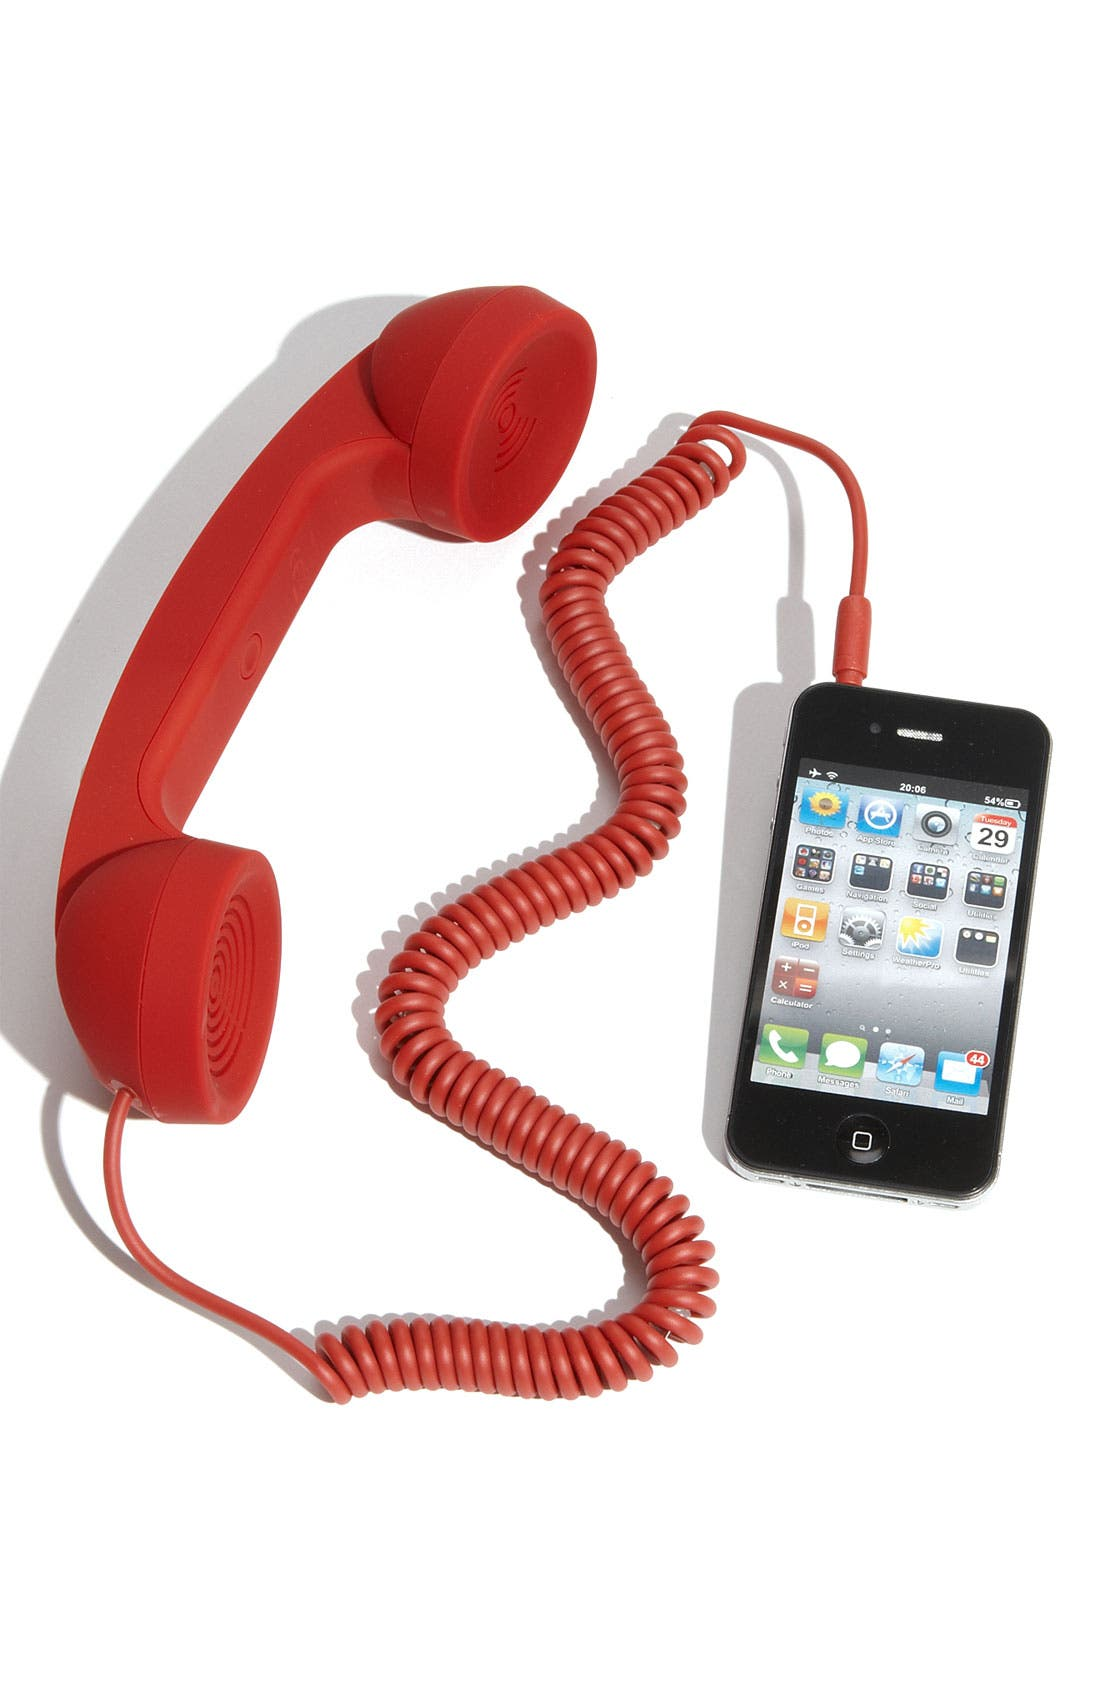 Alternate Image 1 Selected - Native Union 'Pop Phone' Handset